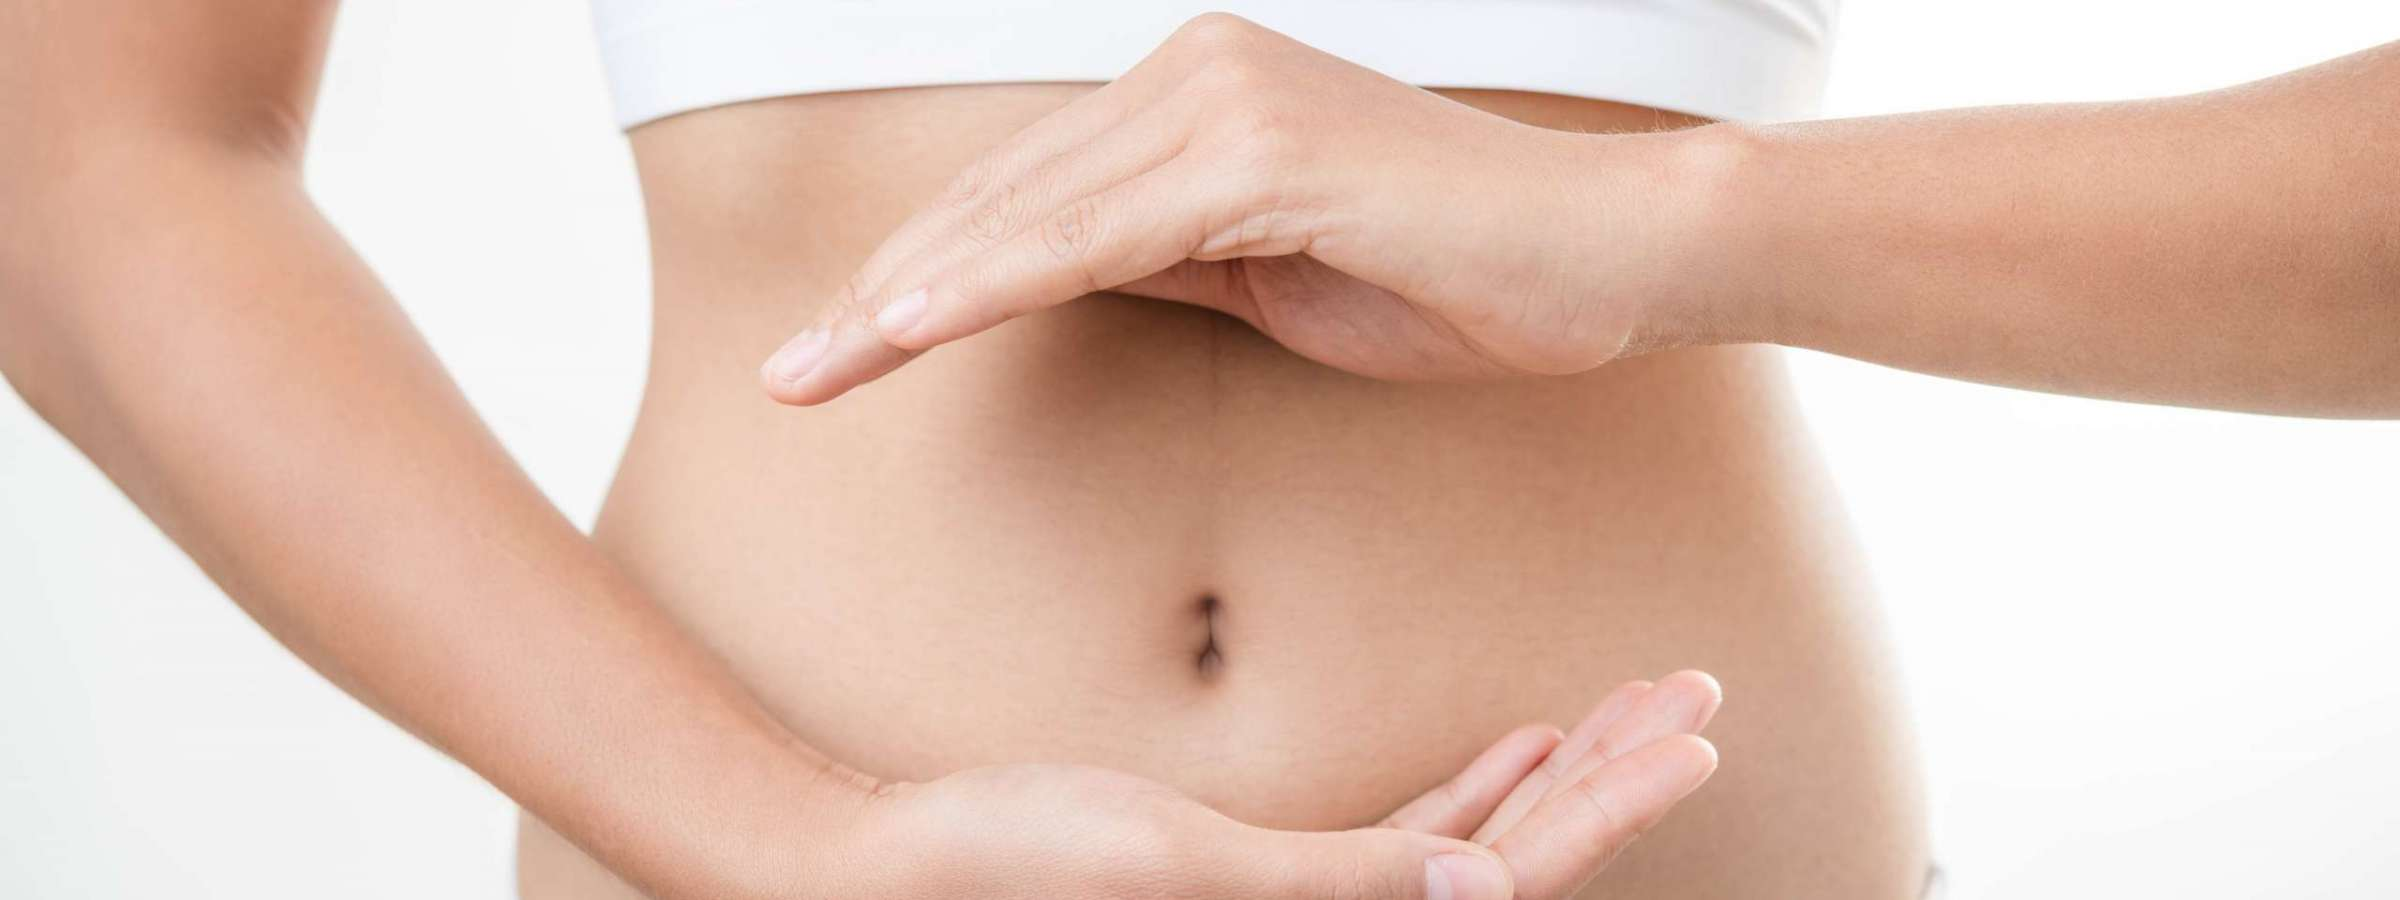 other gynae services